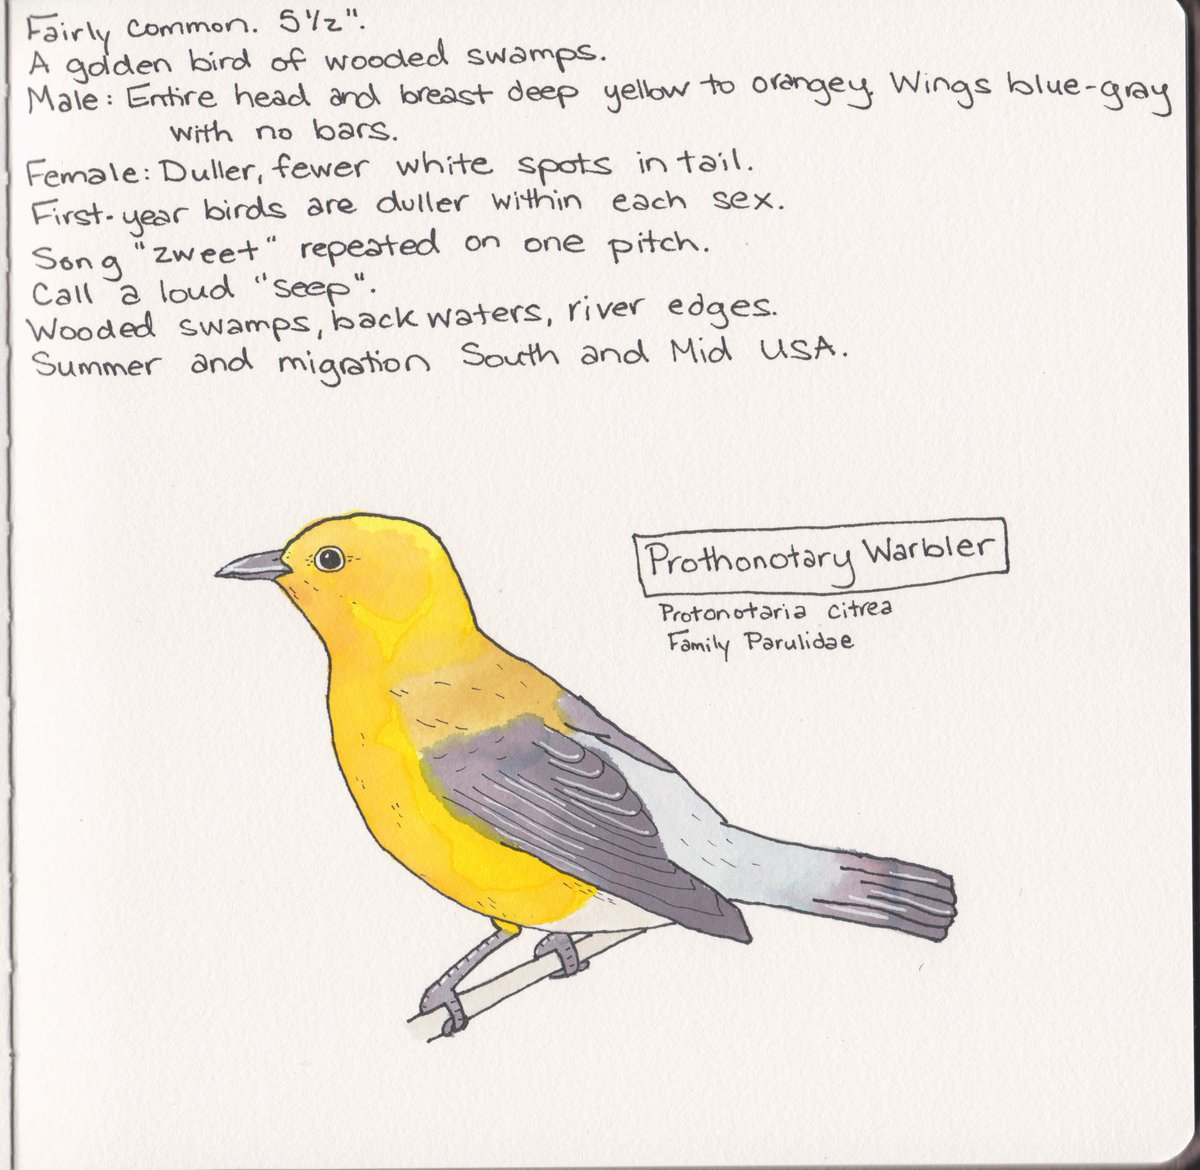 0057 - Prothonotary Warbler  So yellow. So bright.  #birds #BirdTwitter #watercolor https://t.co/hhvAvStK0m